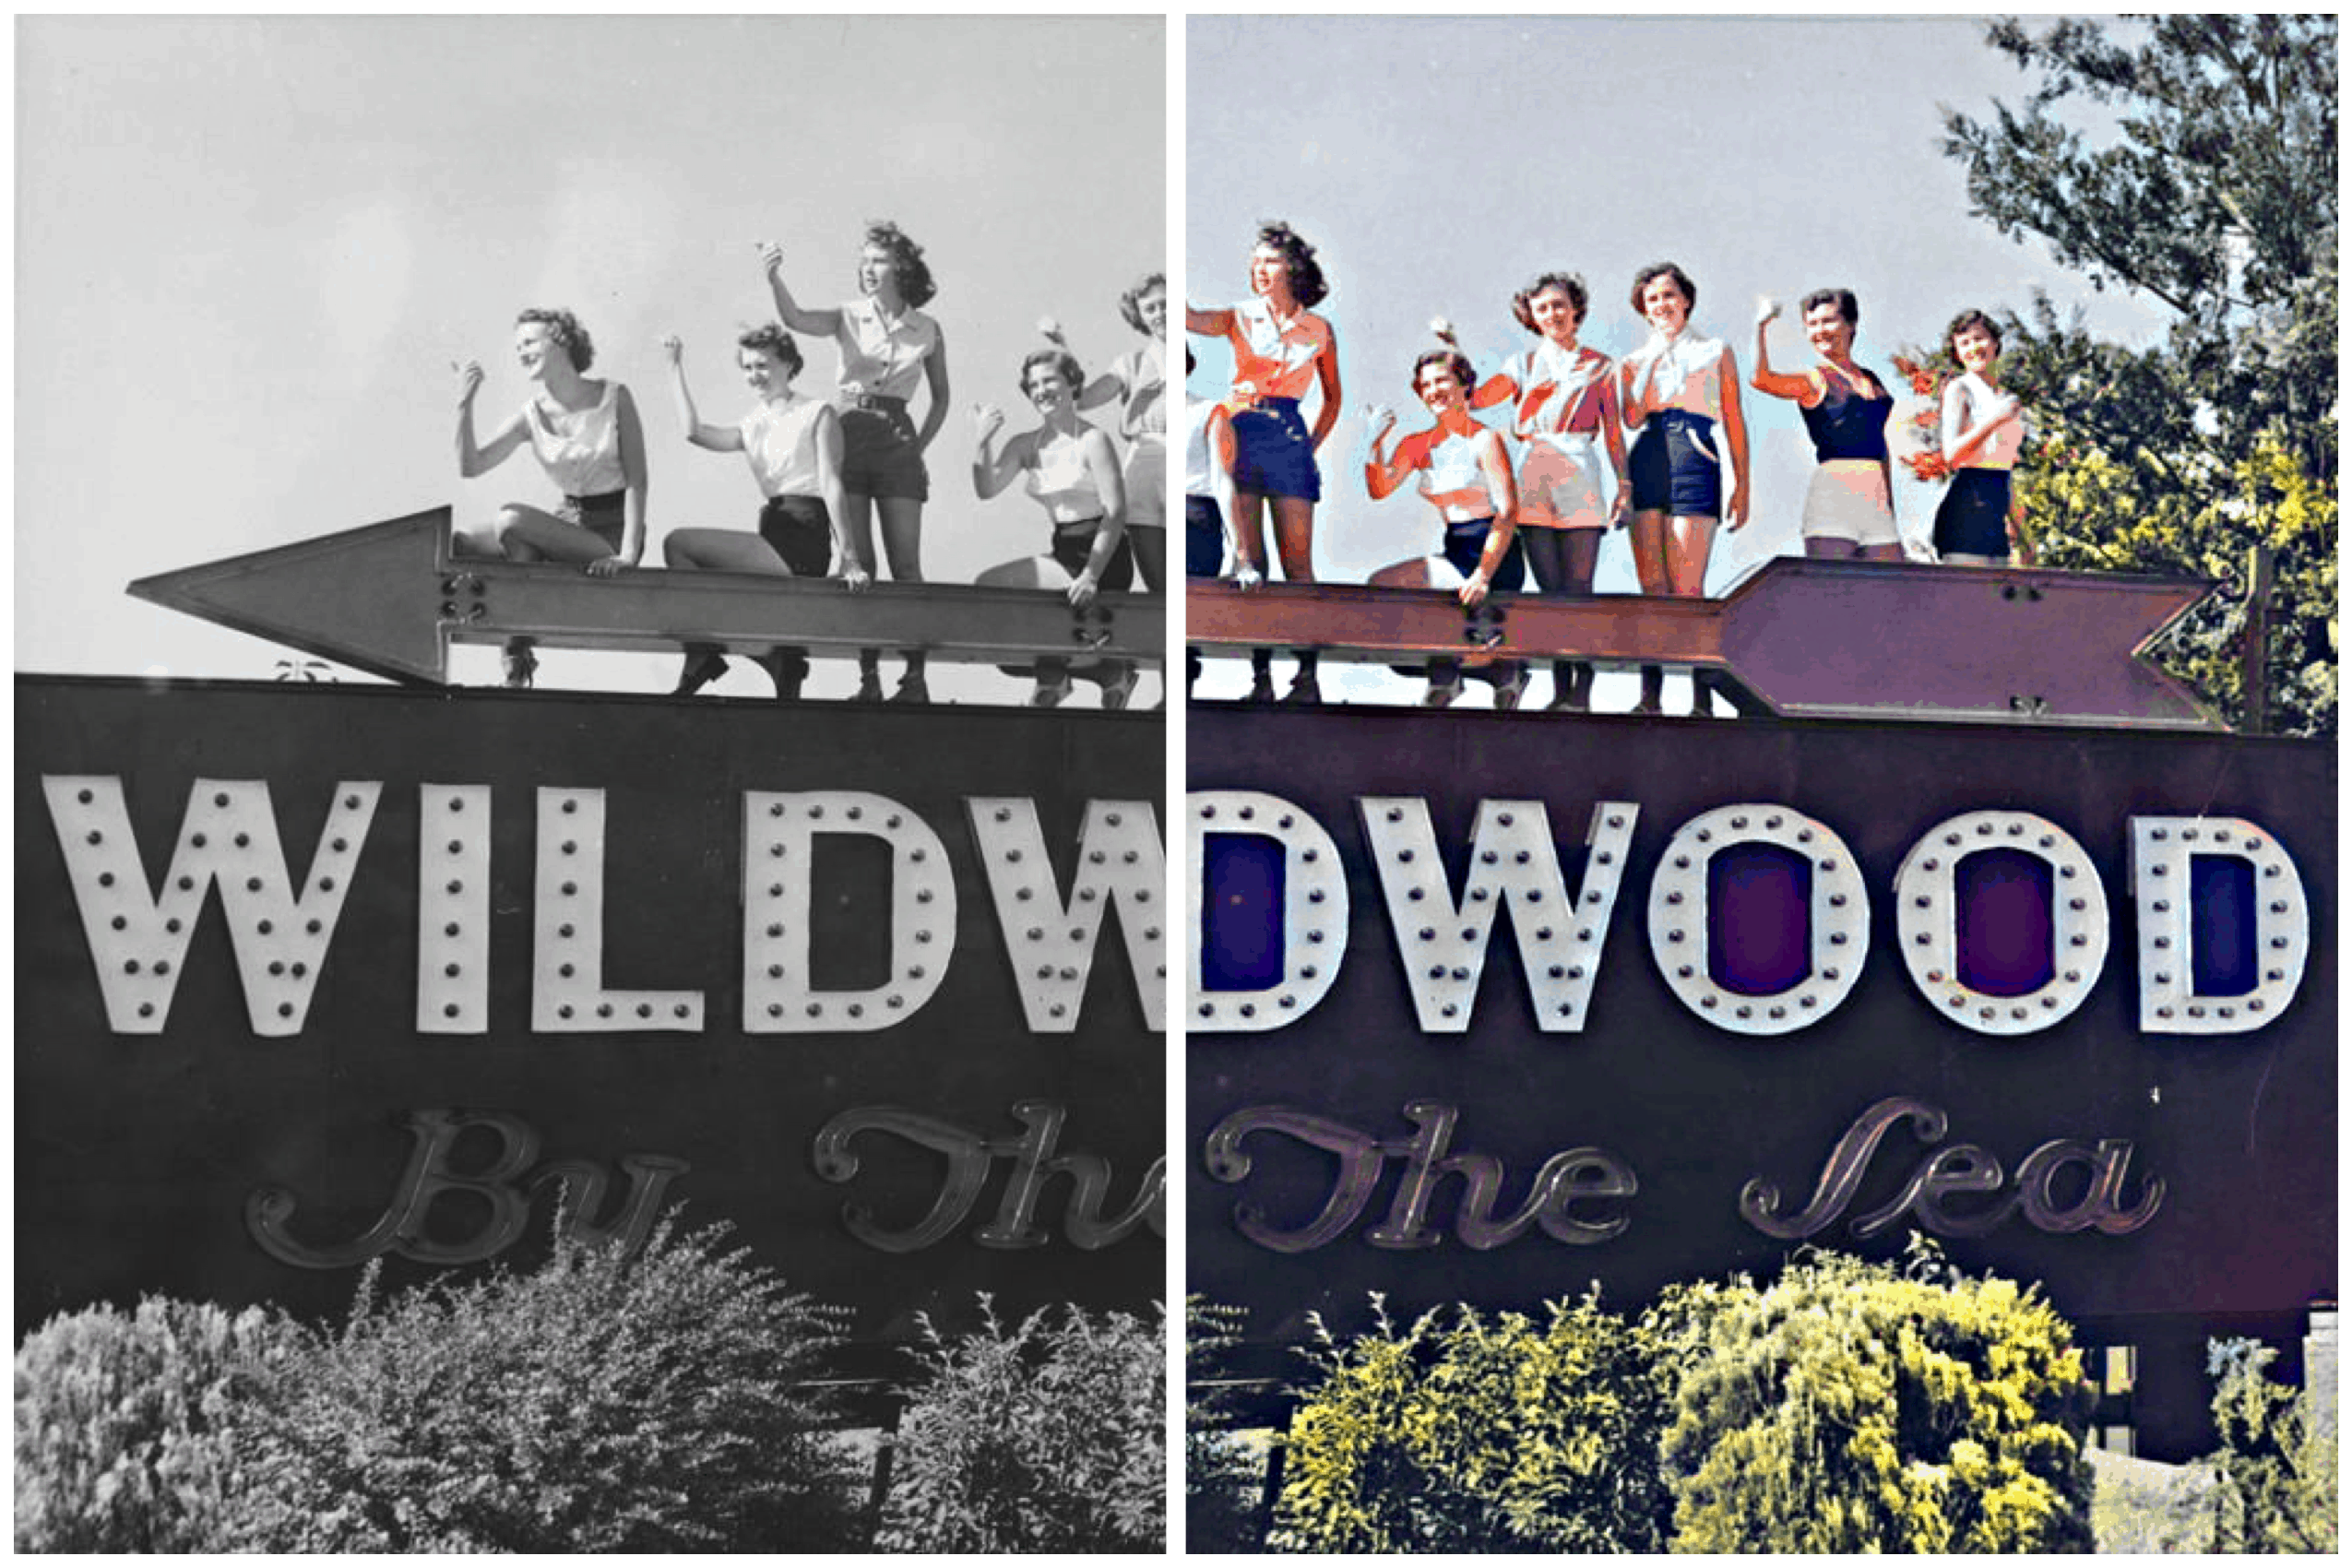 Colorized Historical Wildwood Photos - Part 1